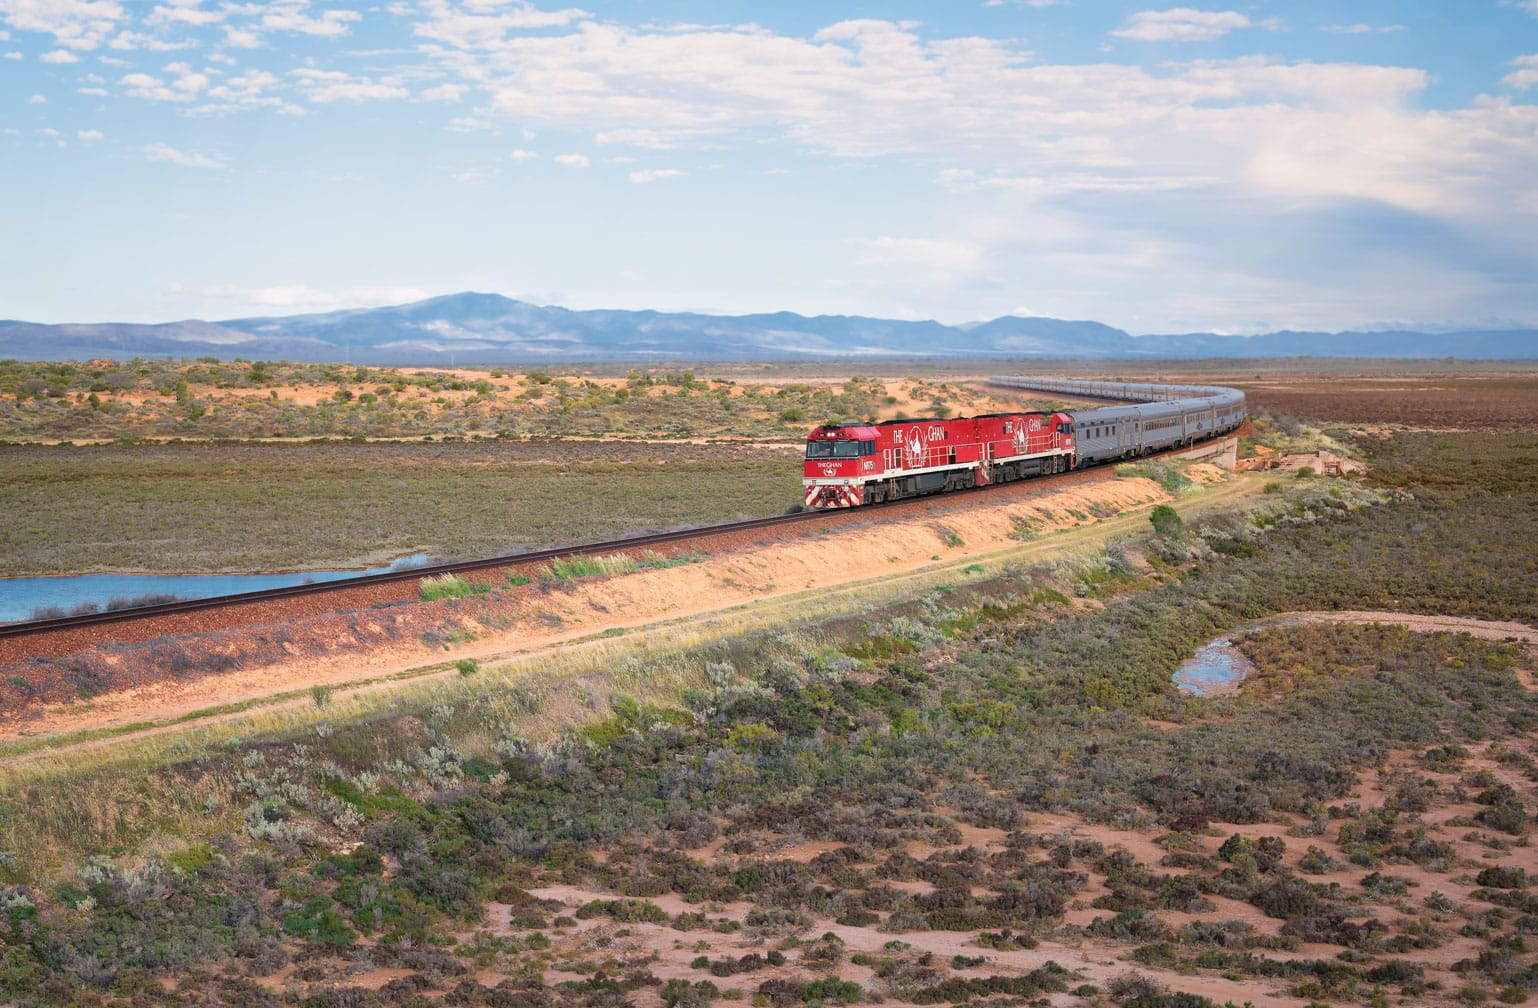 The Ghan train heading north out of Port Augusta near Yorkeys Crossing